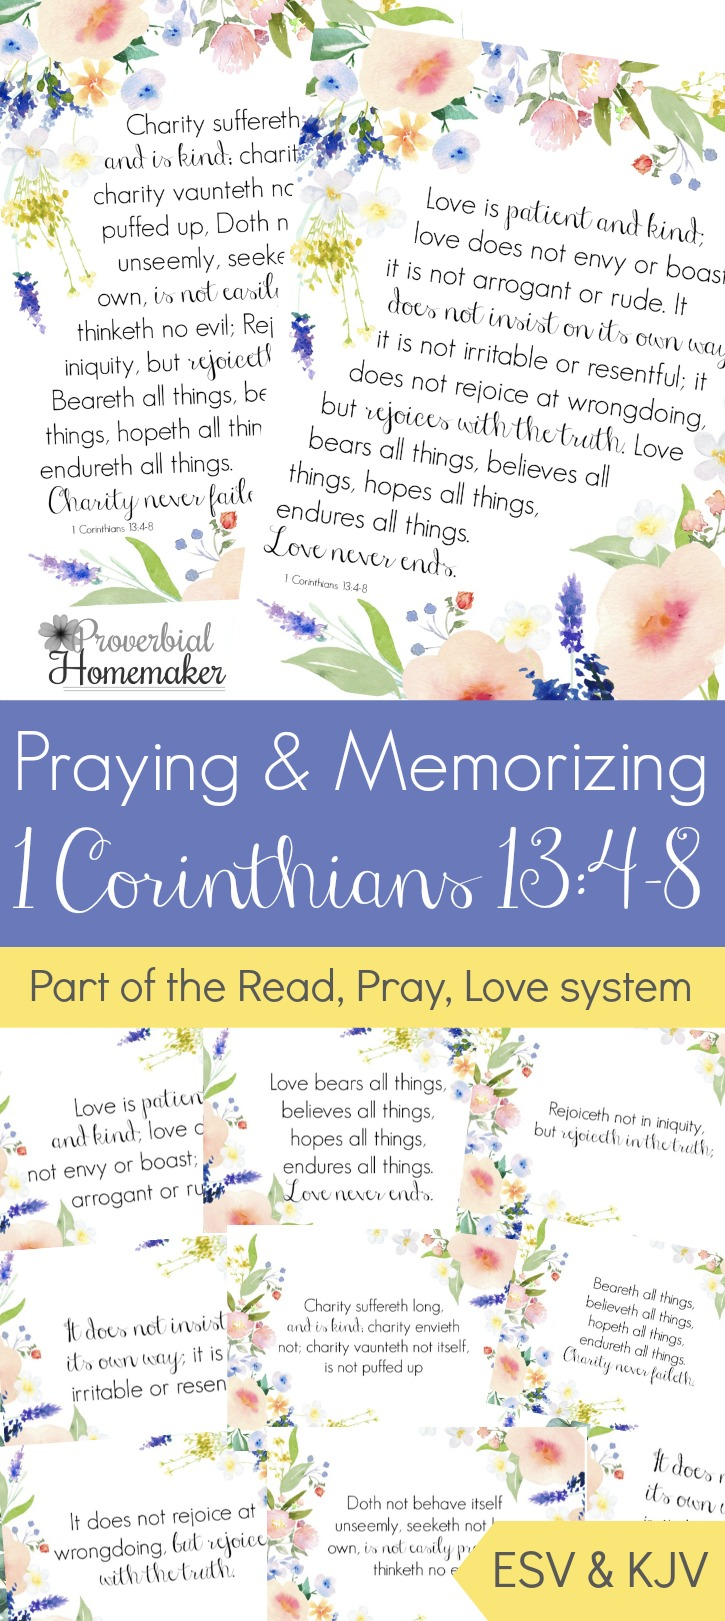 The Scripture Memory Printable for the month of February is I Corinthians 13:4-8, which seems fitting with Valentine's Day this month. These printables are available in both ESV & KJV, so grab the one you want to memorize and pray over this month. :: www.thriftyhomeschoolers.com